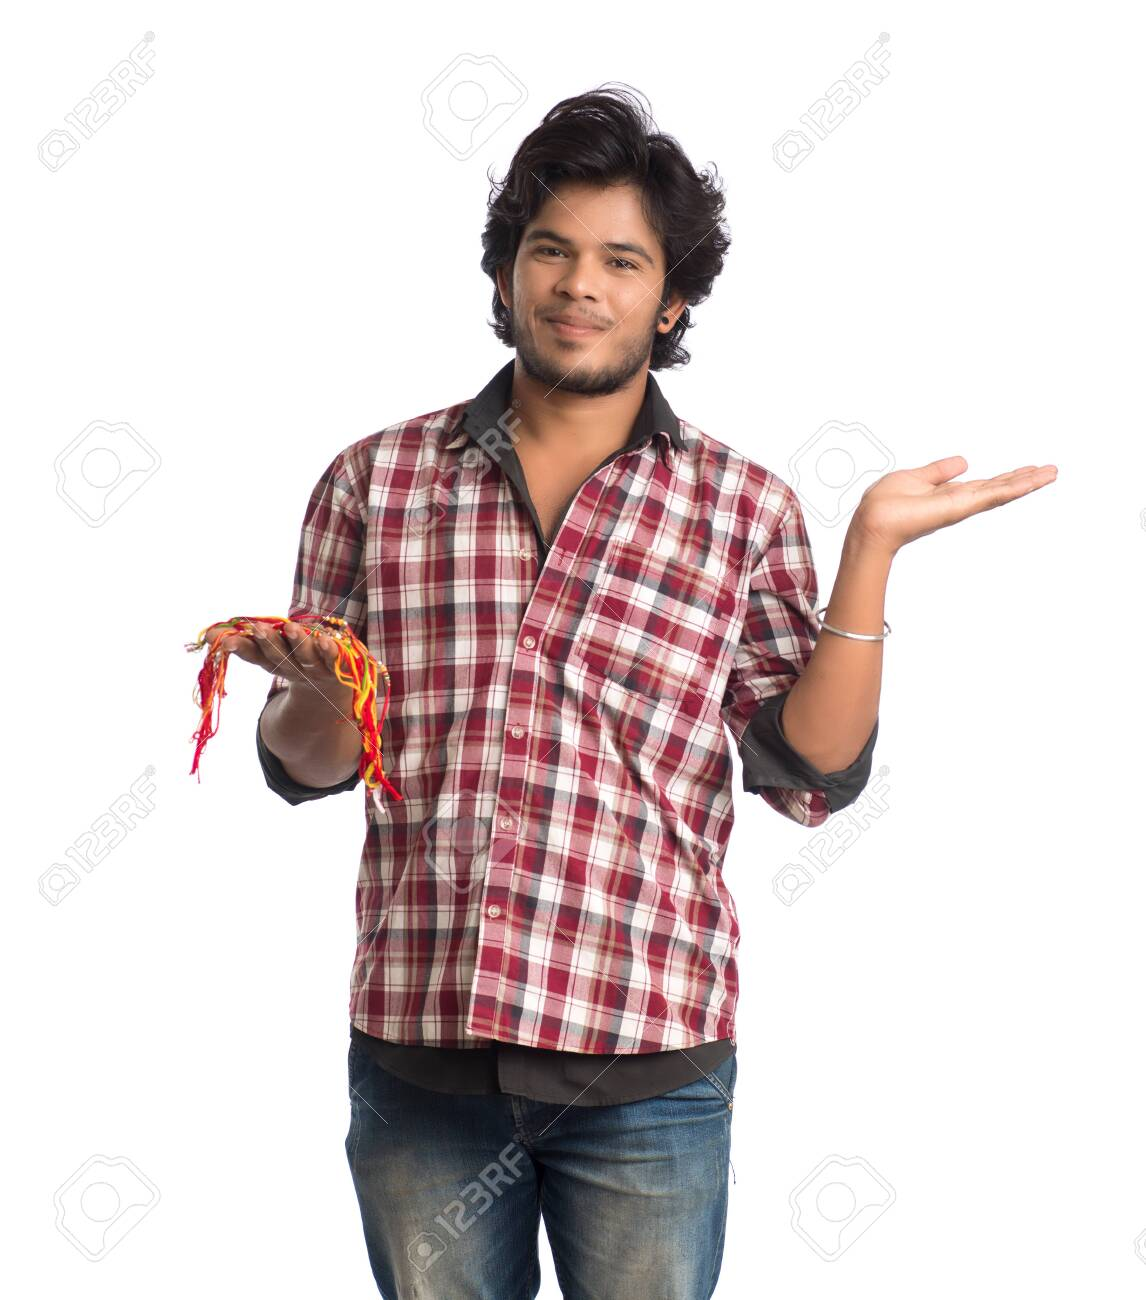 Young men showing rakhi in hand and giving expression on an occasion of Raksha Bandhan festival. - 147112167